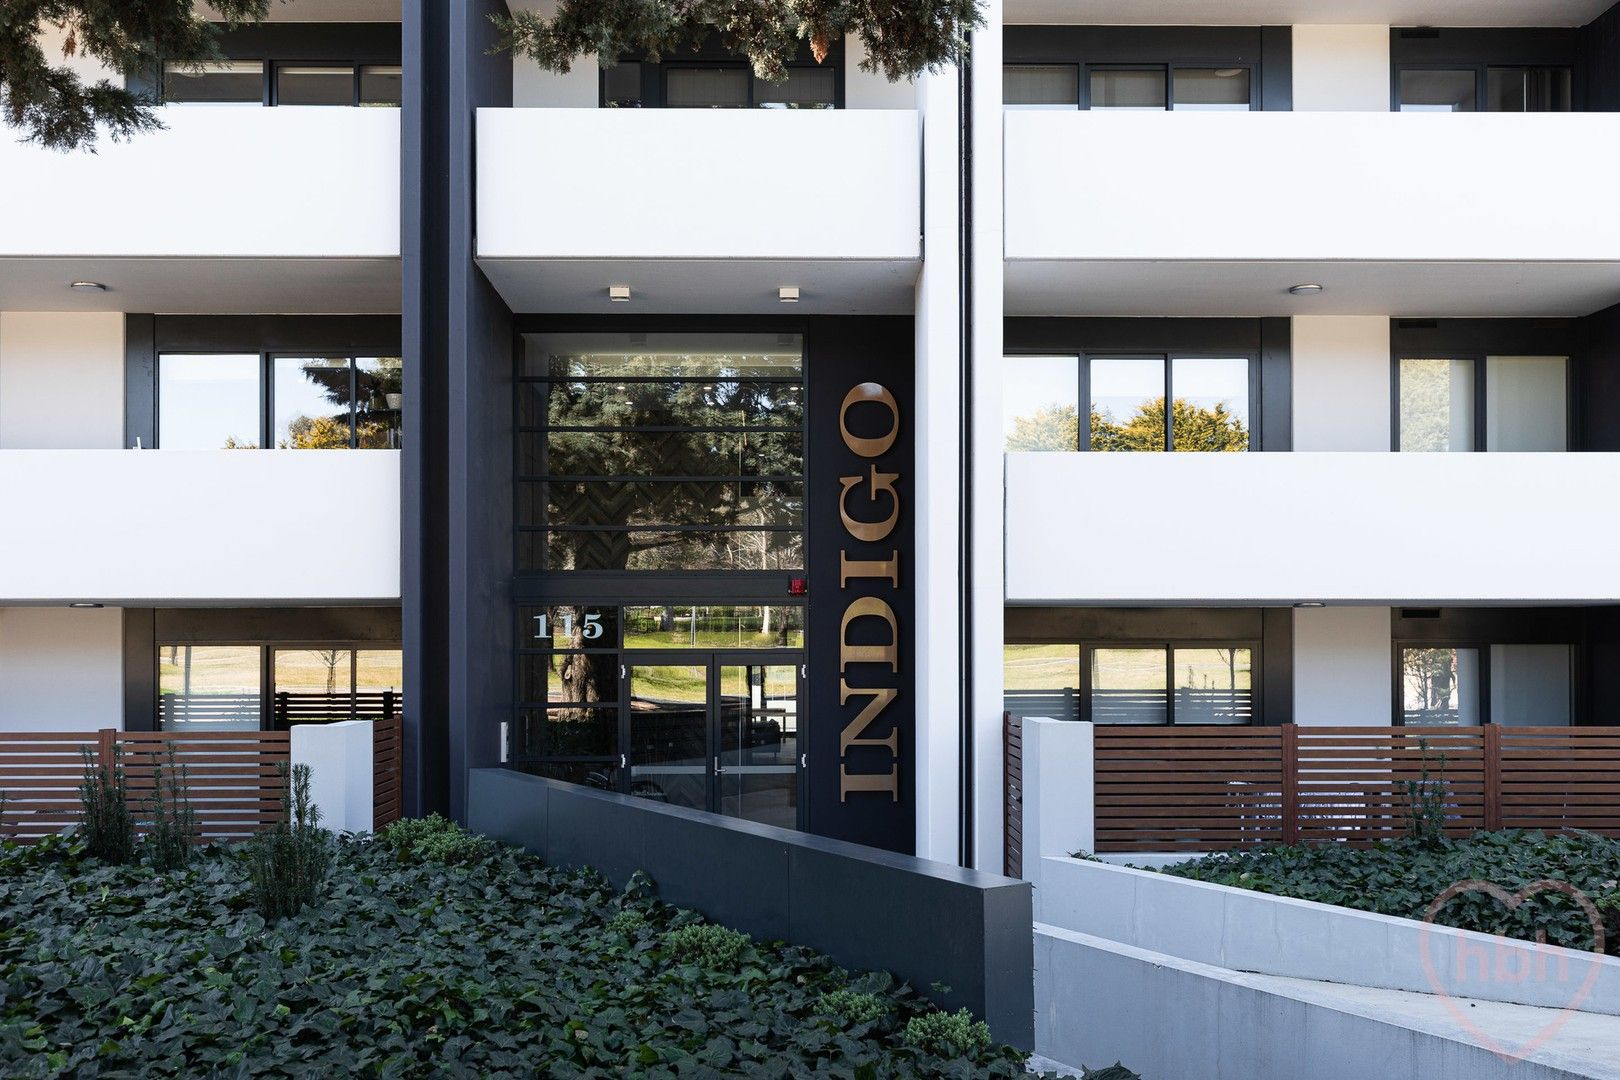 2 bedrooms Apartment / Unit / Flat in 69/115 Canberra  Avenue GRIFFITH ACT, 2603